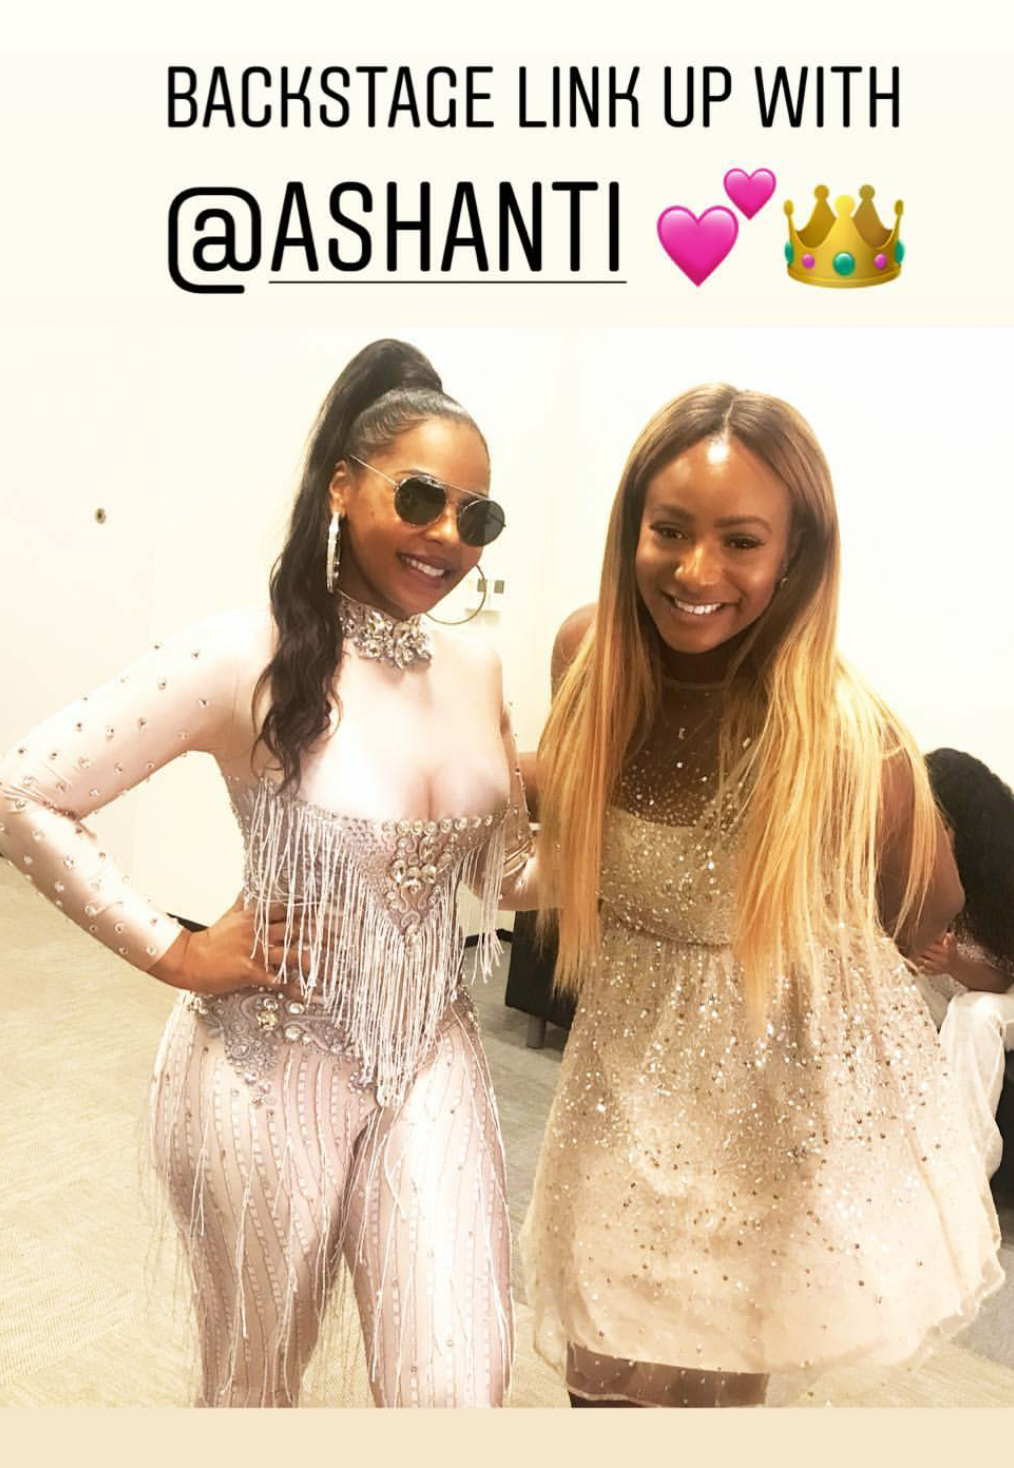 DJ Cuppy strikes a pose backstage with Ashanti after a show in Malta